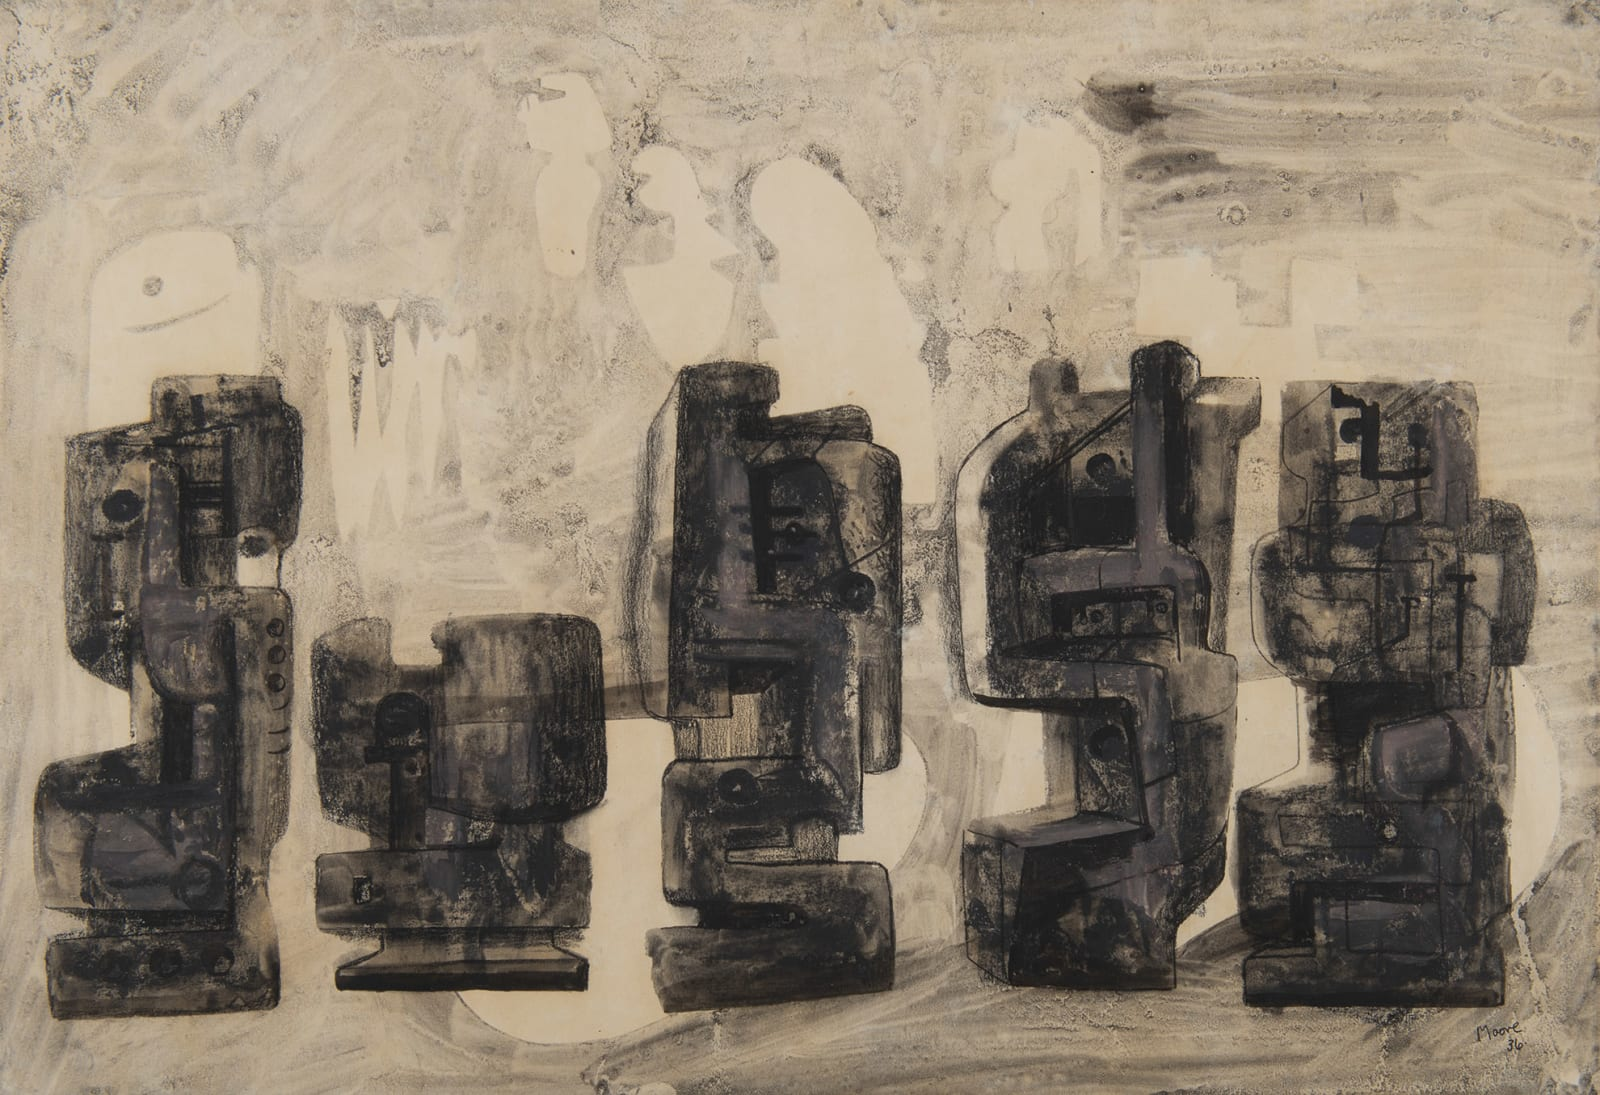 HENRY MOORE, Five Square Forms in a Setting, 1936